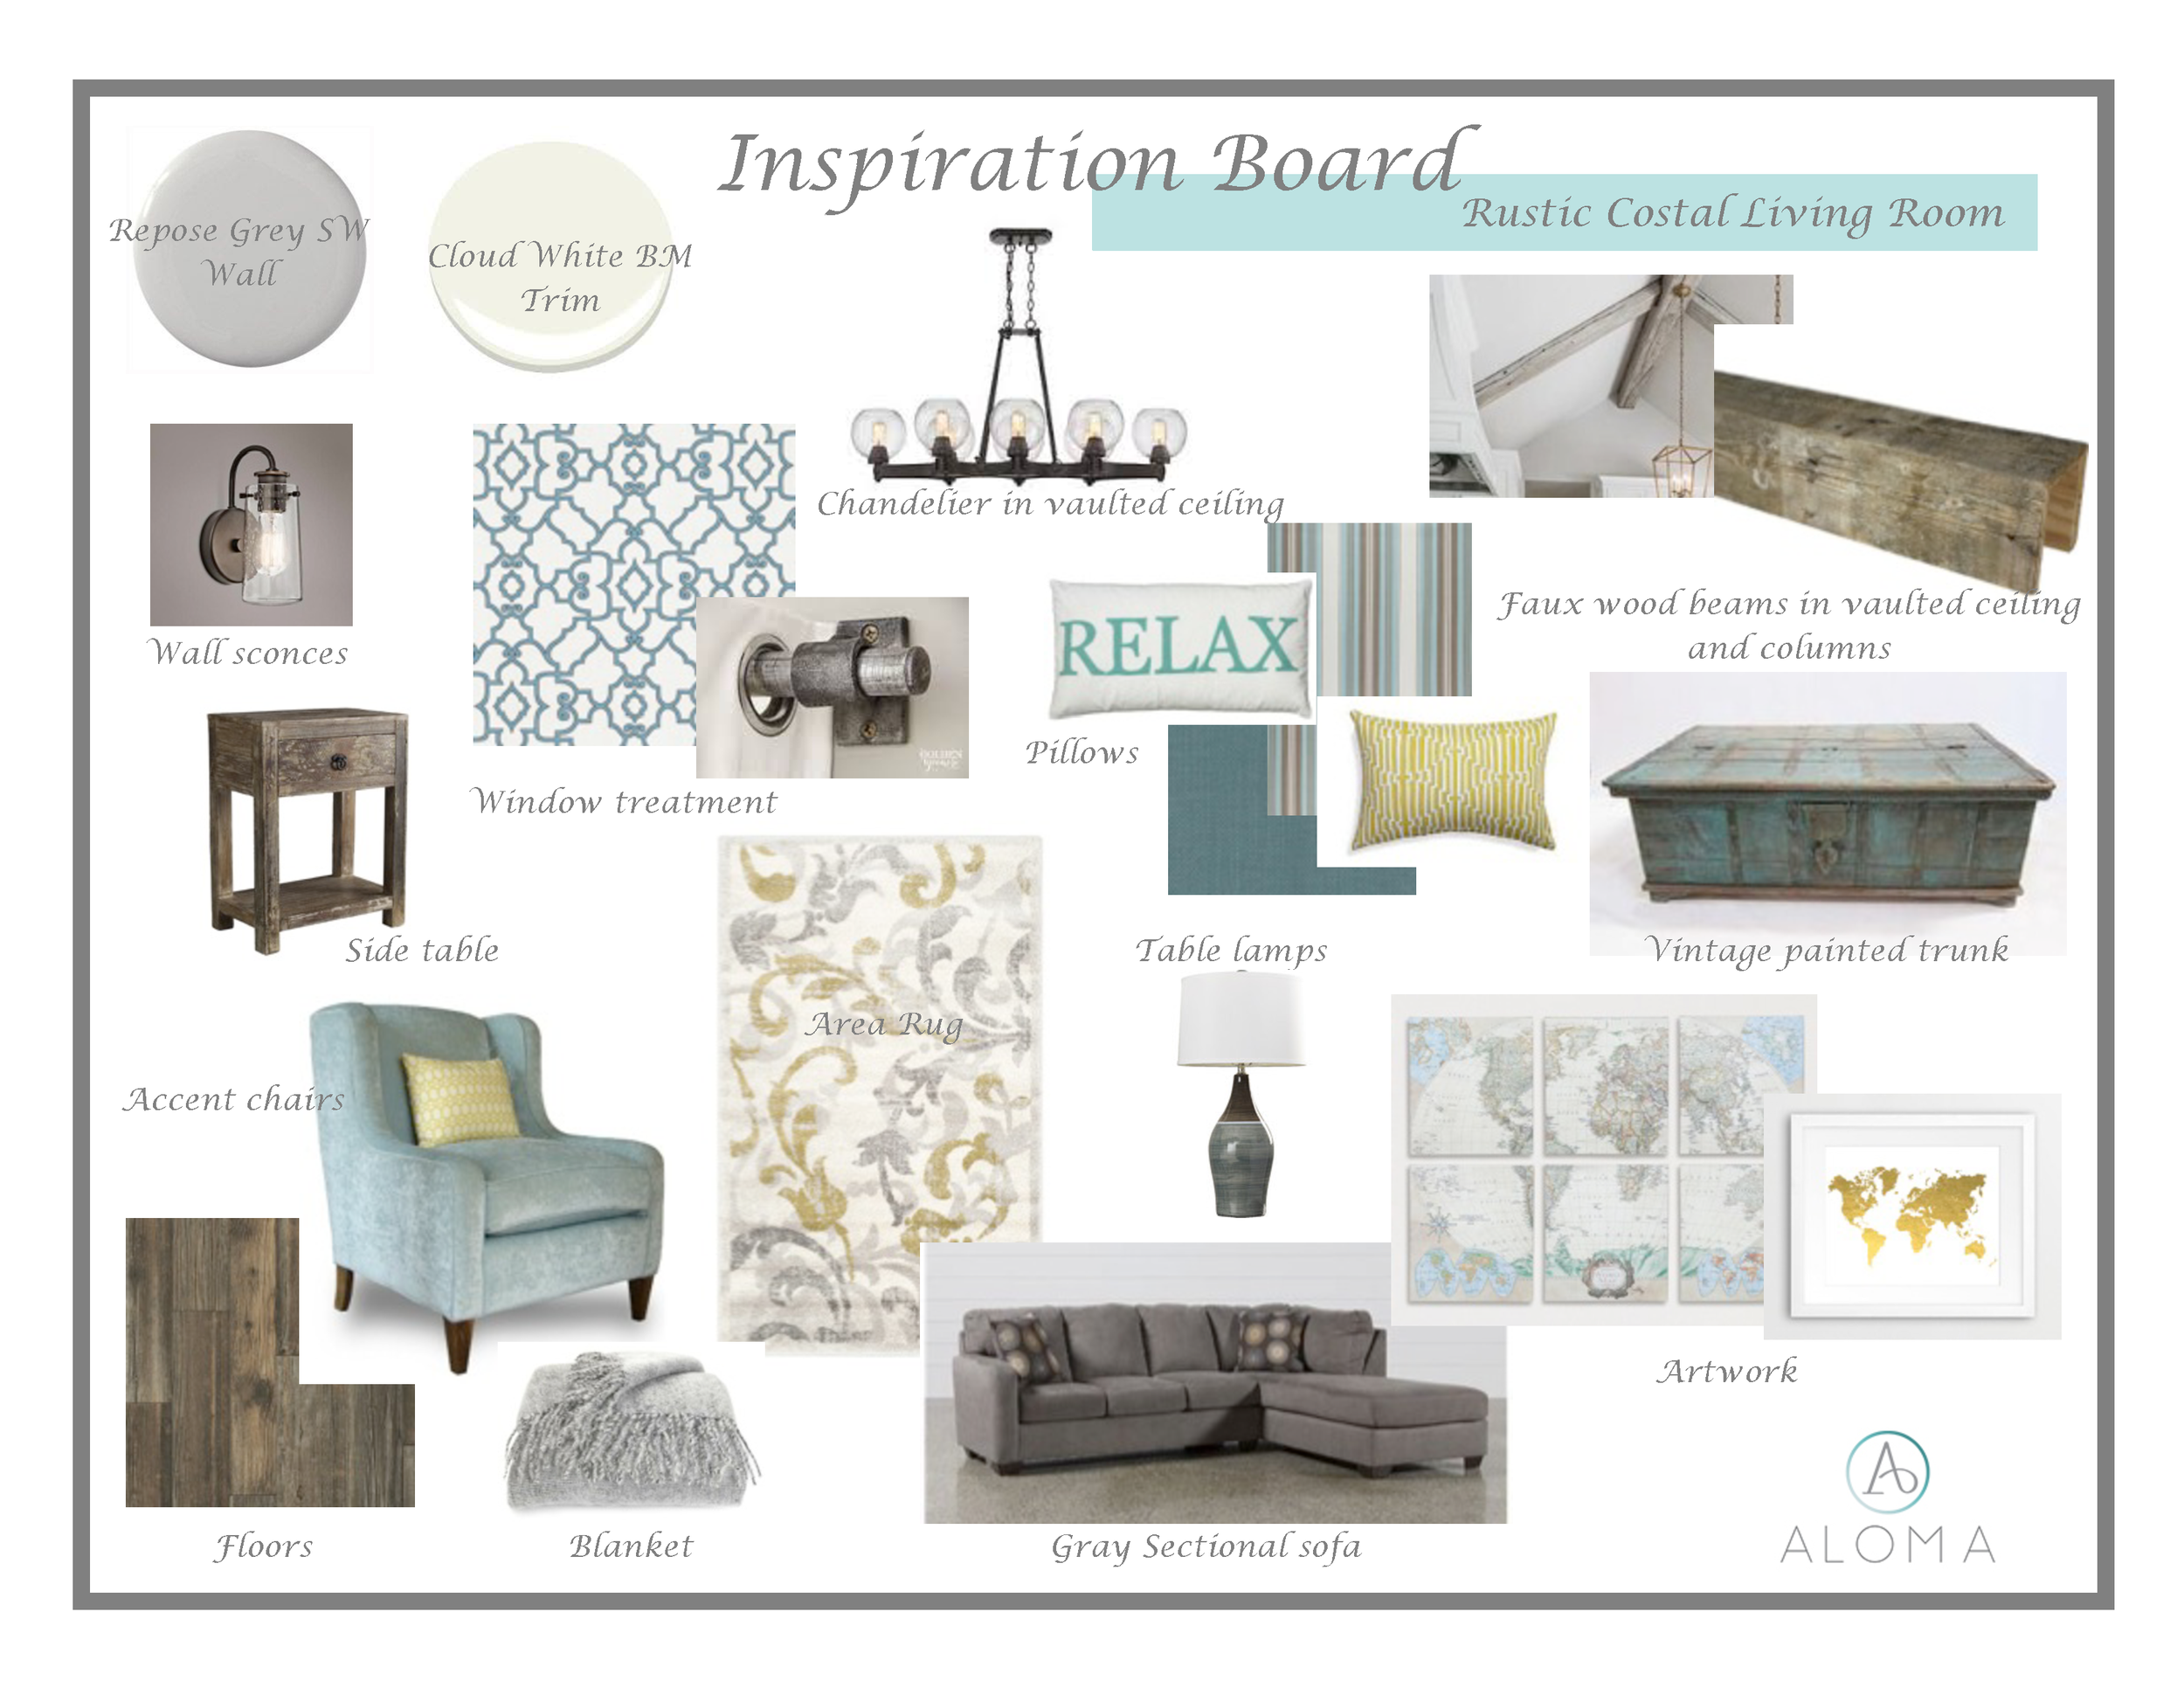 Rustic Costal Living Room Inspiration Board by Aloma Home Staging & Design